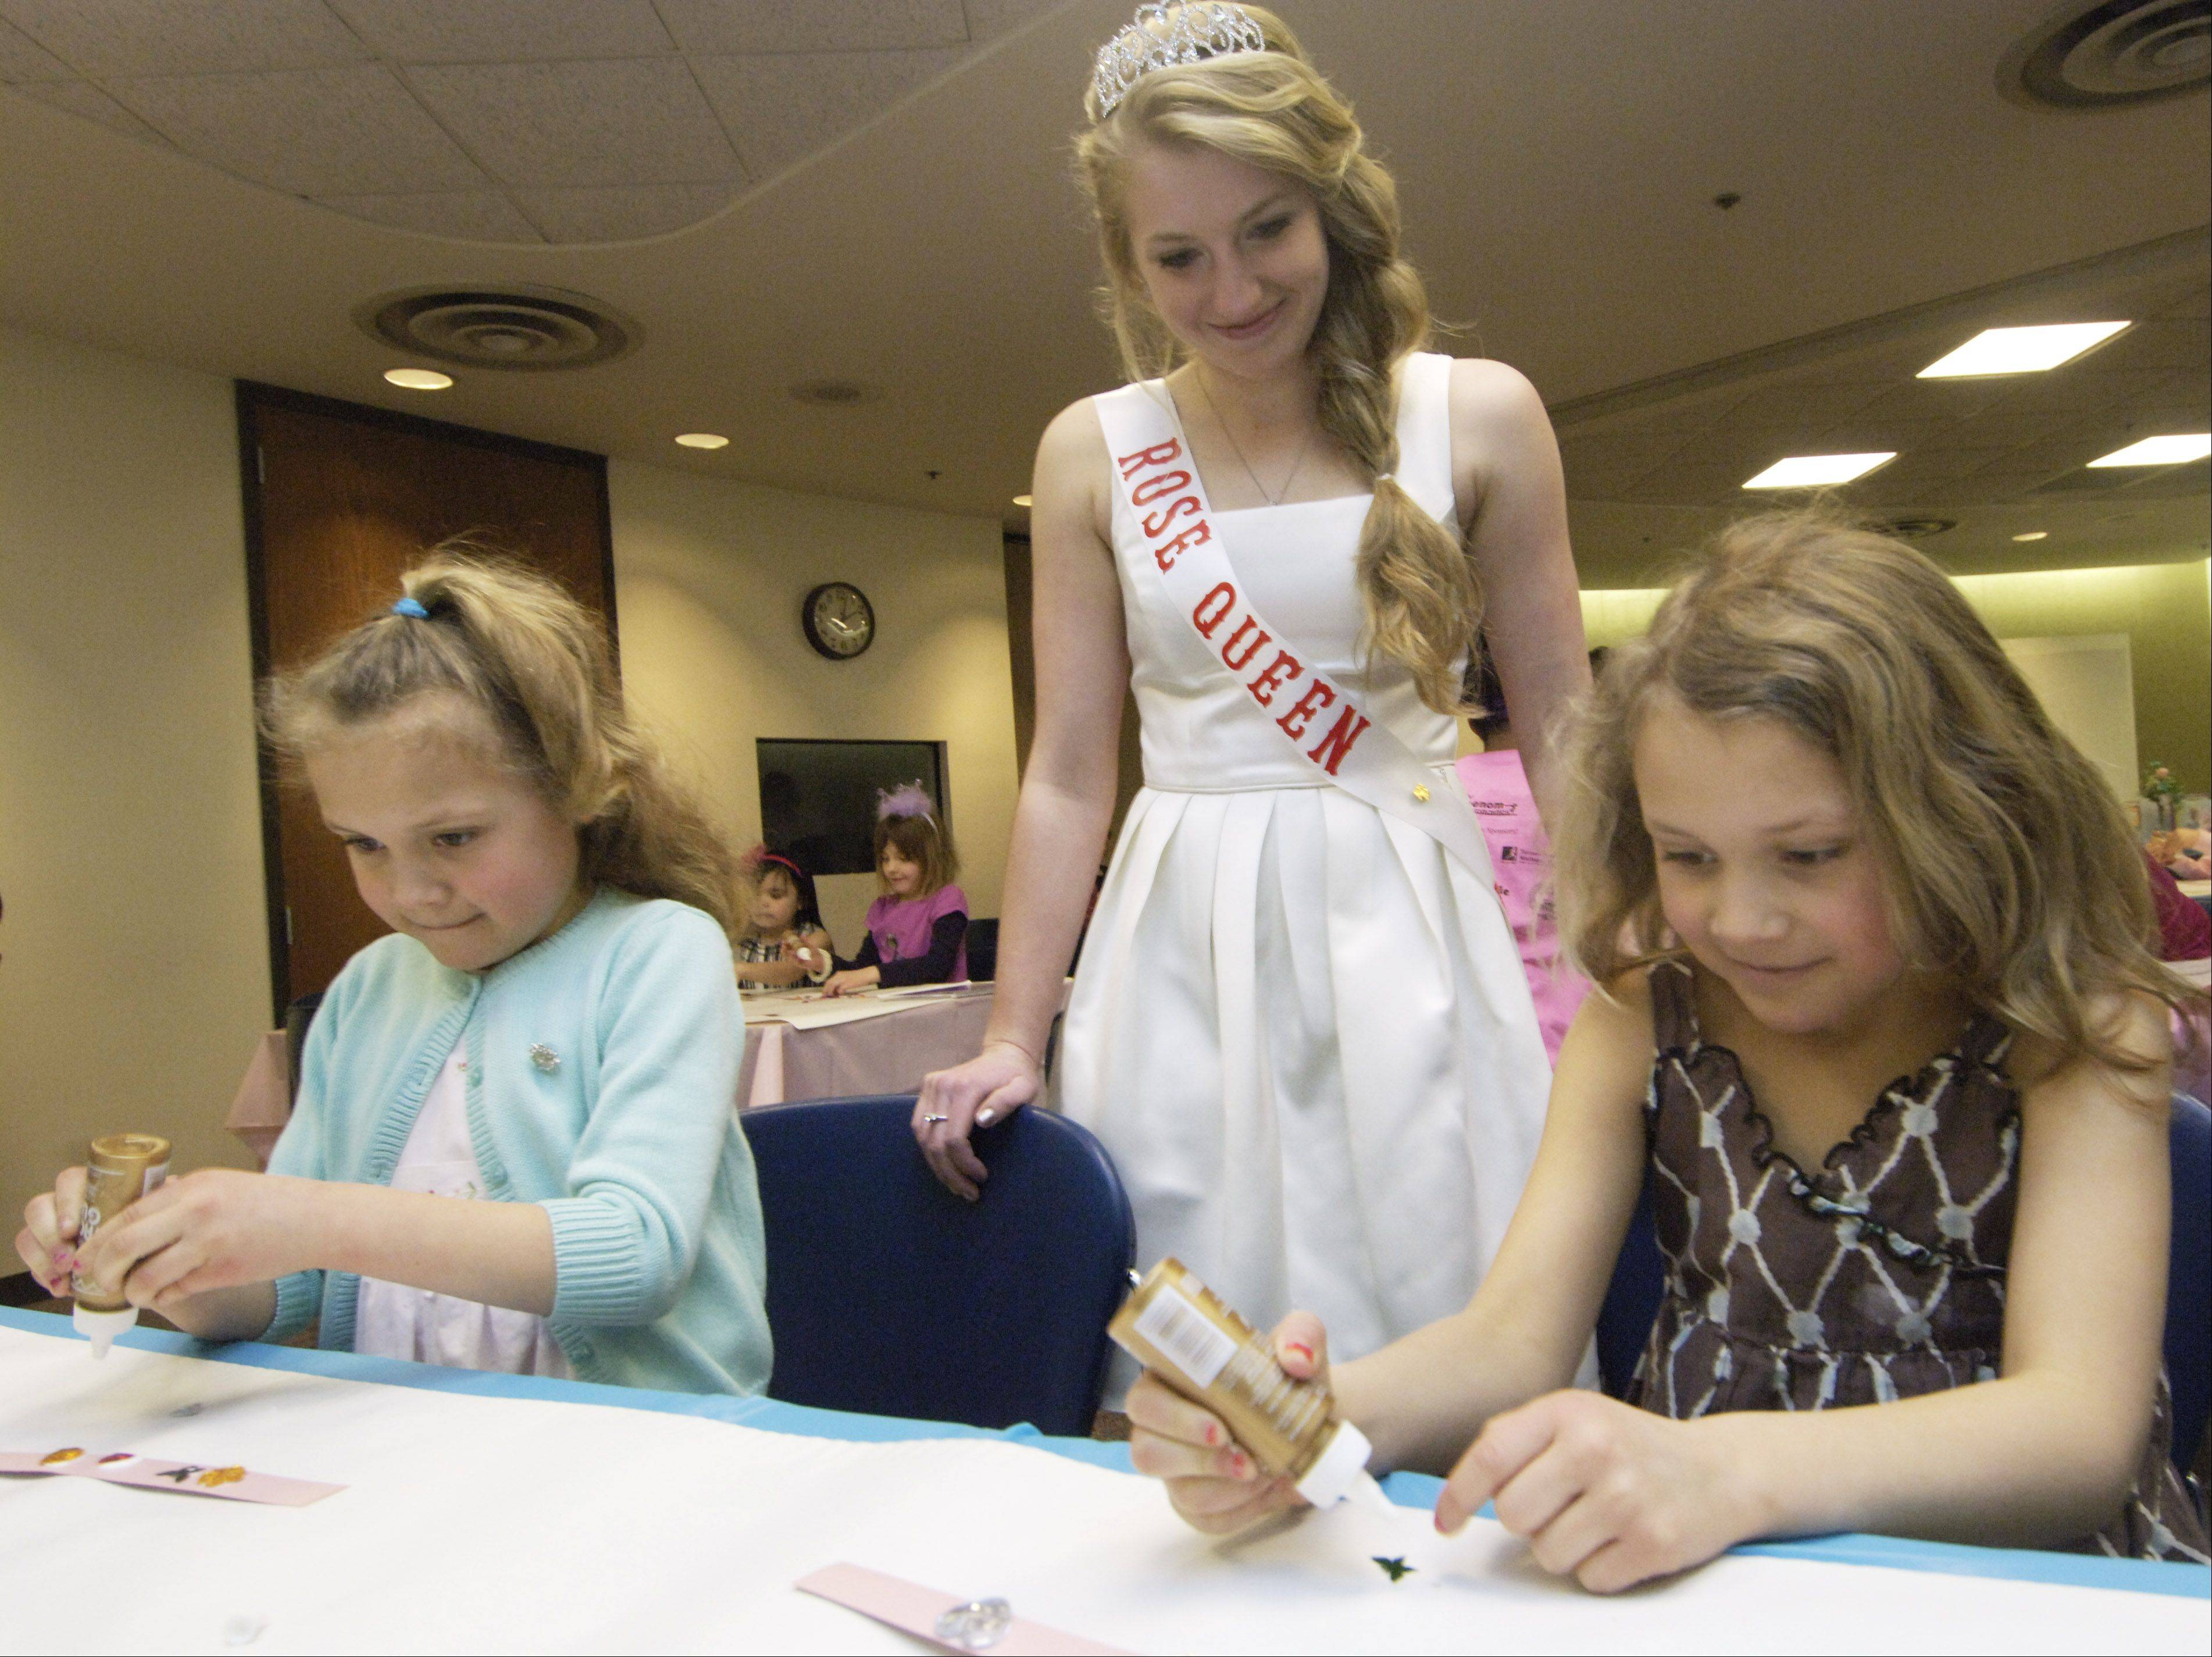 The Rose Queen is the guest of honor at the annual Rose Queen Tea with little girls who may have princess dreams of their own.